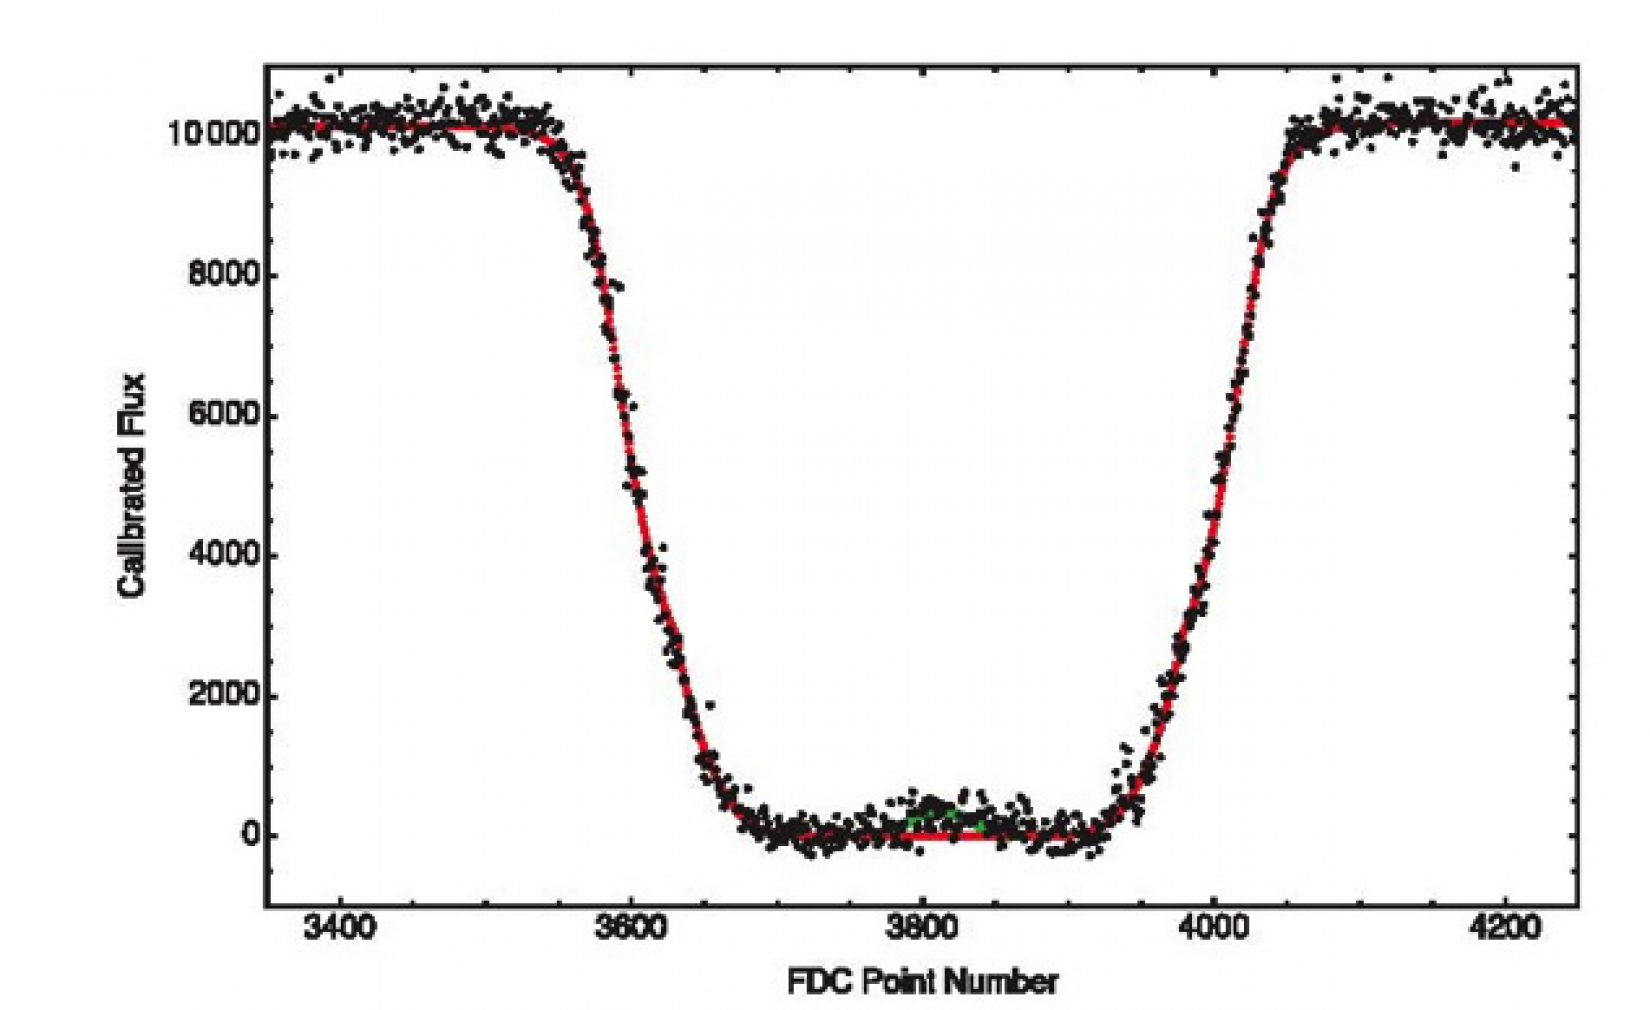 SOFIA HIPO & FDC observations of a stellar occultation by Pluto